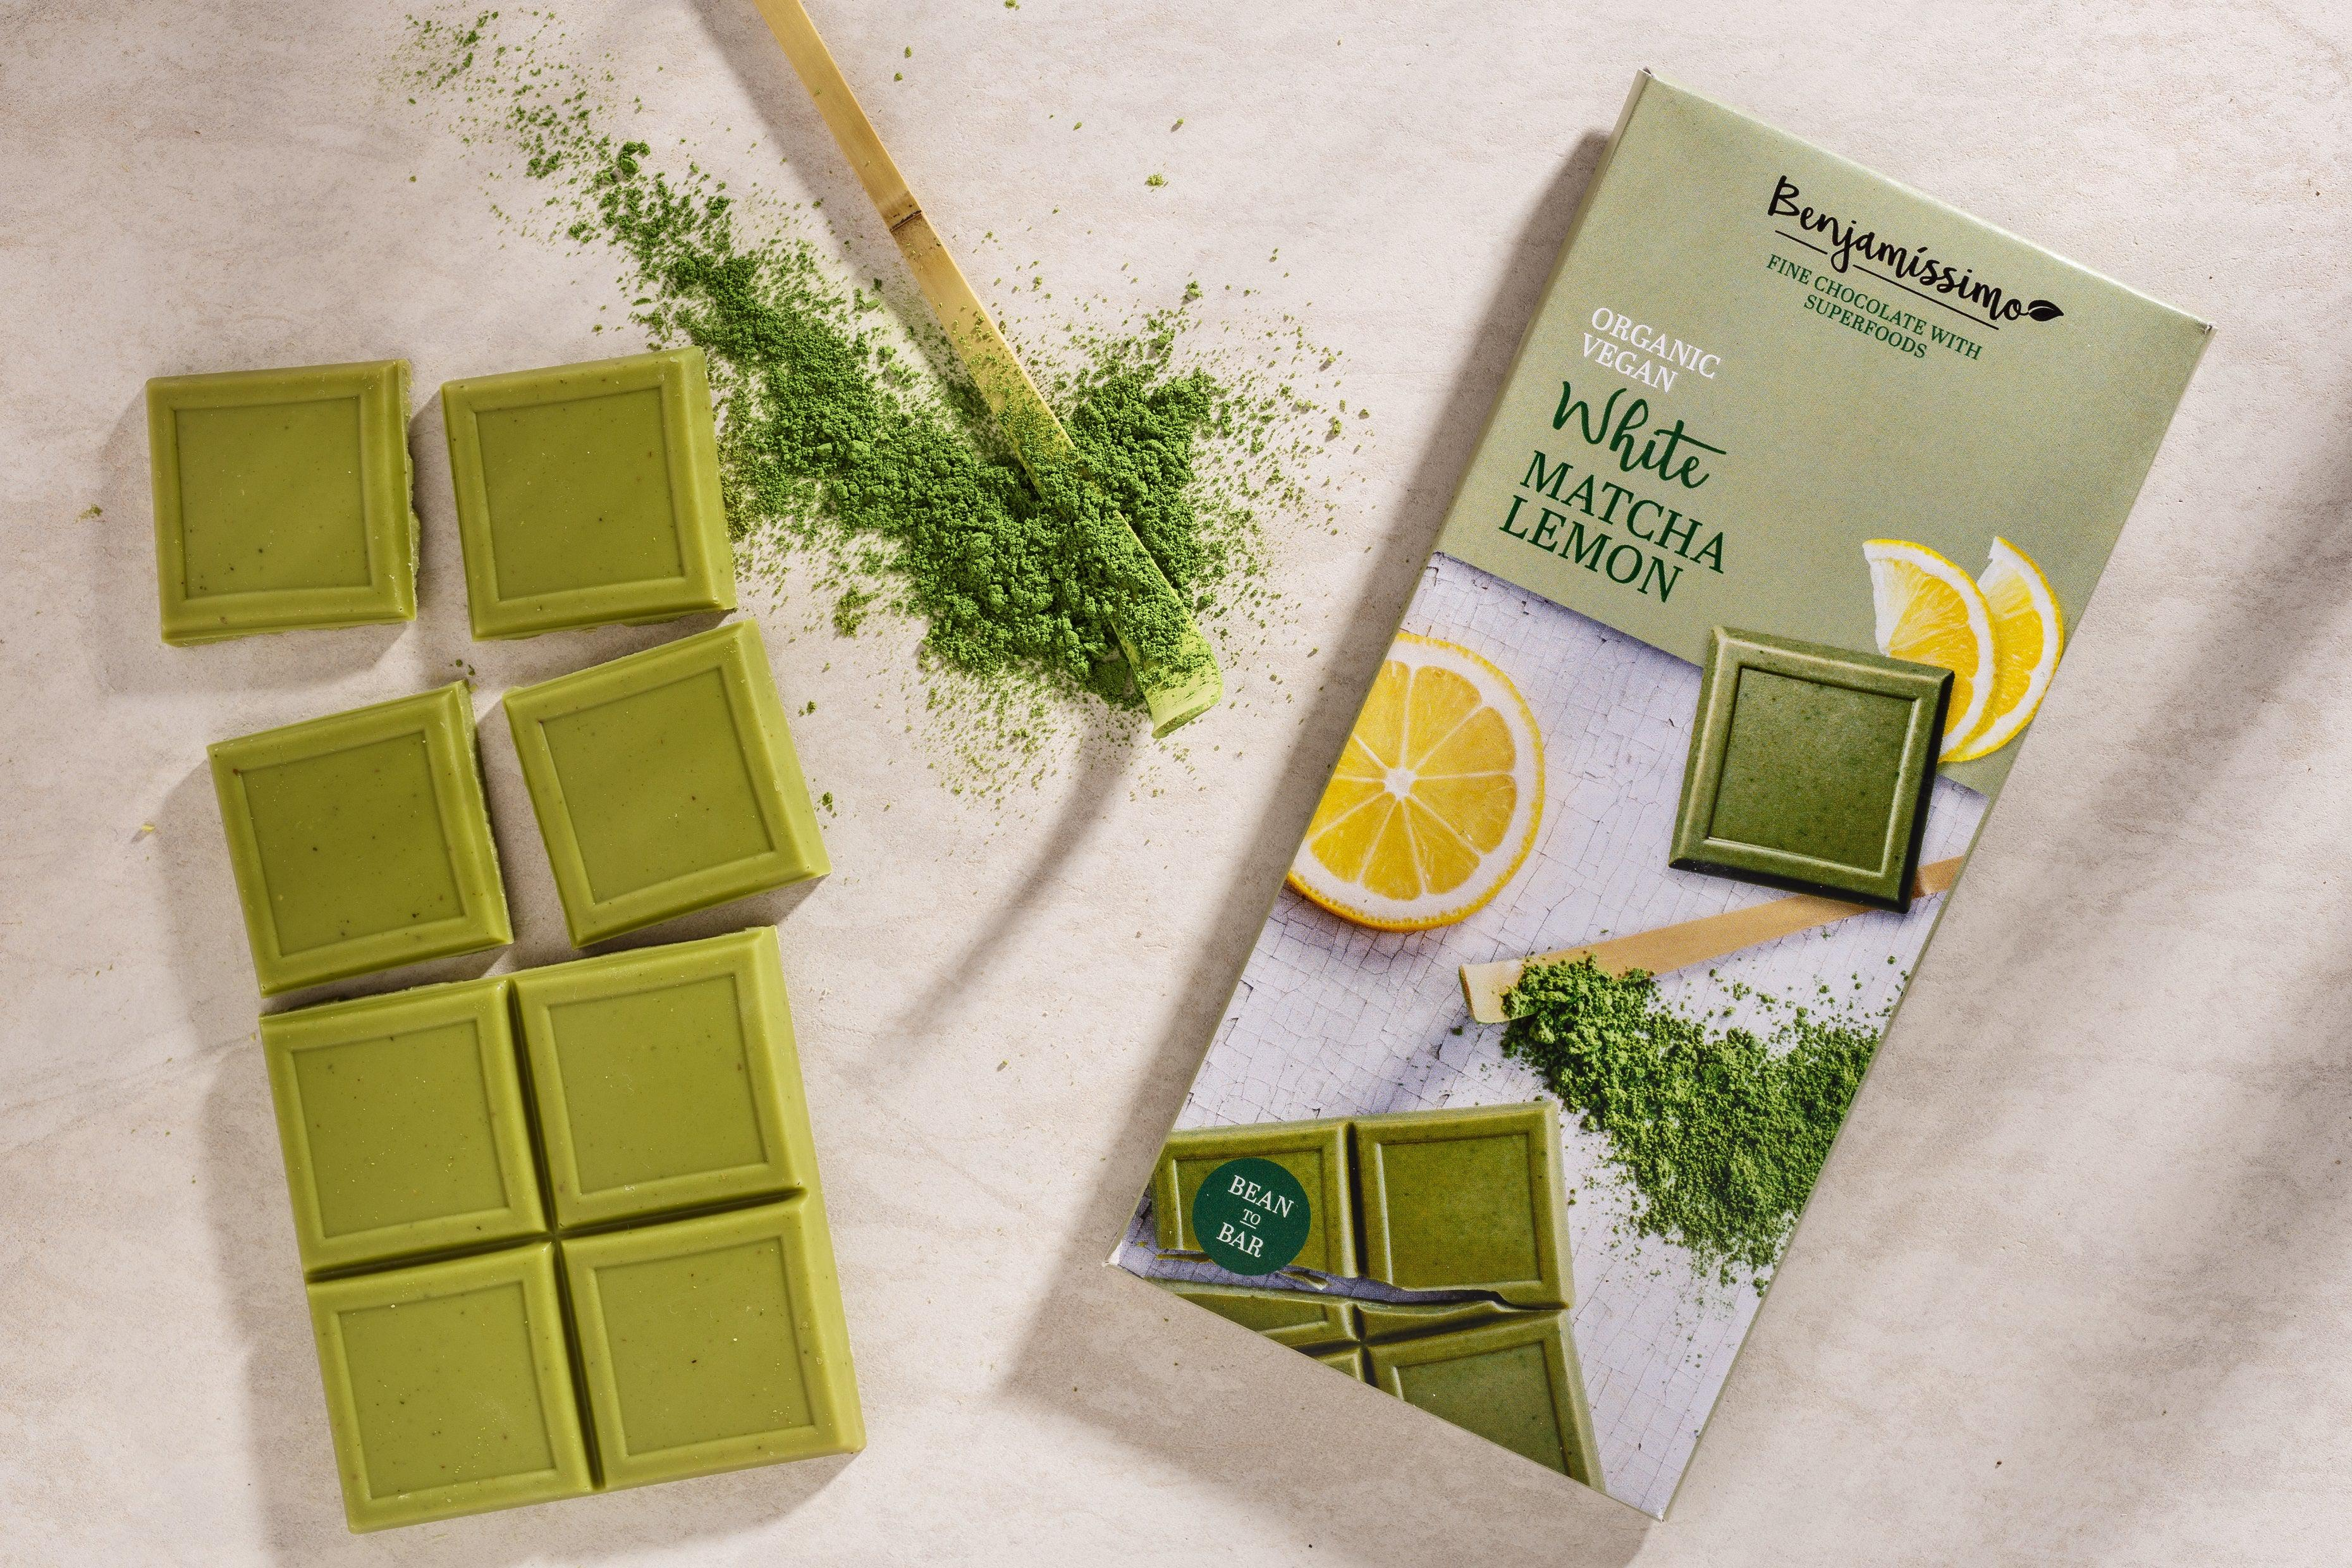 Organic vegan white chocolate with matcha green tea. Free from soy gluten dairy and eggs